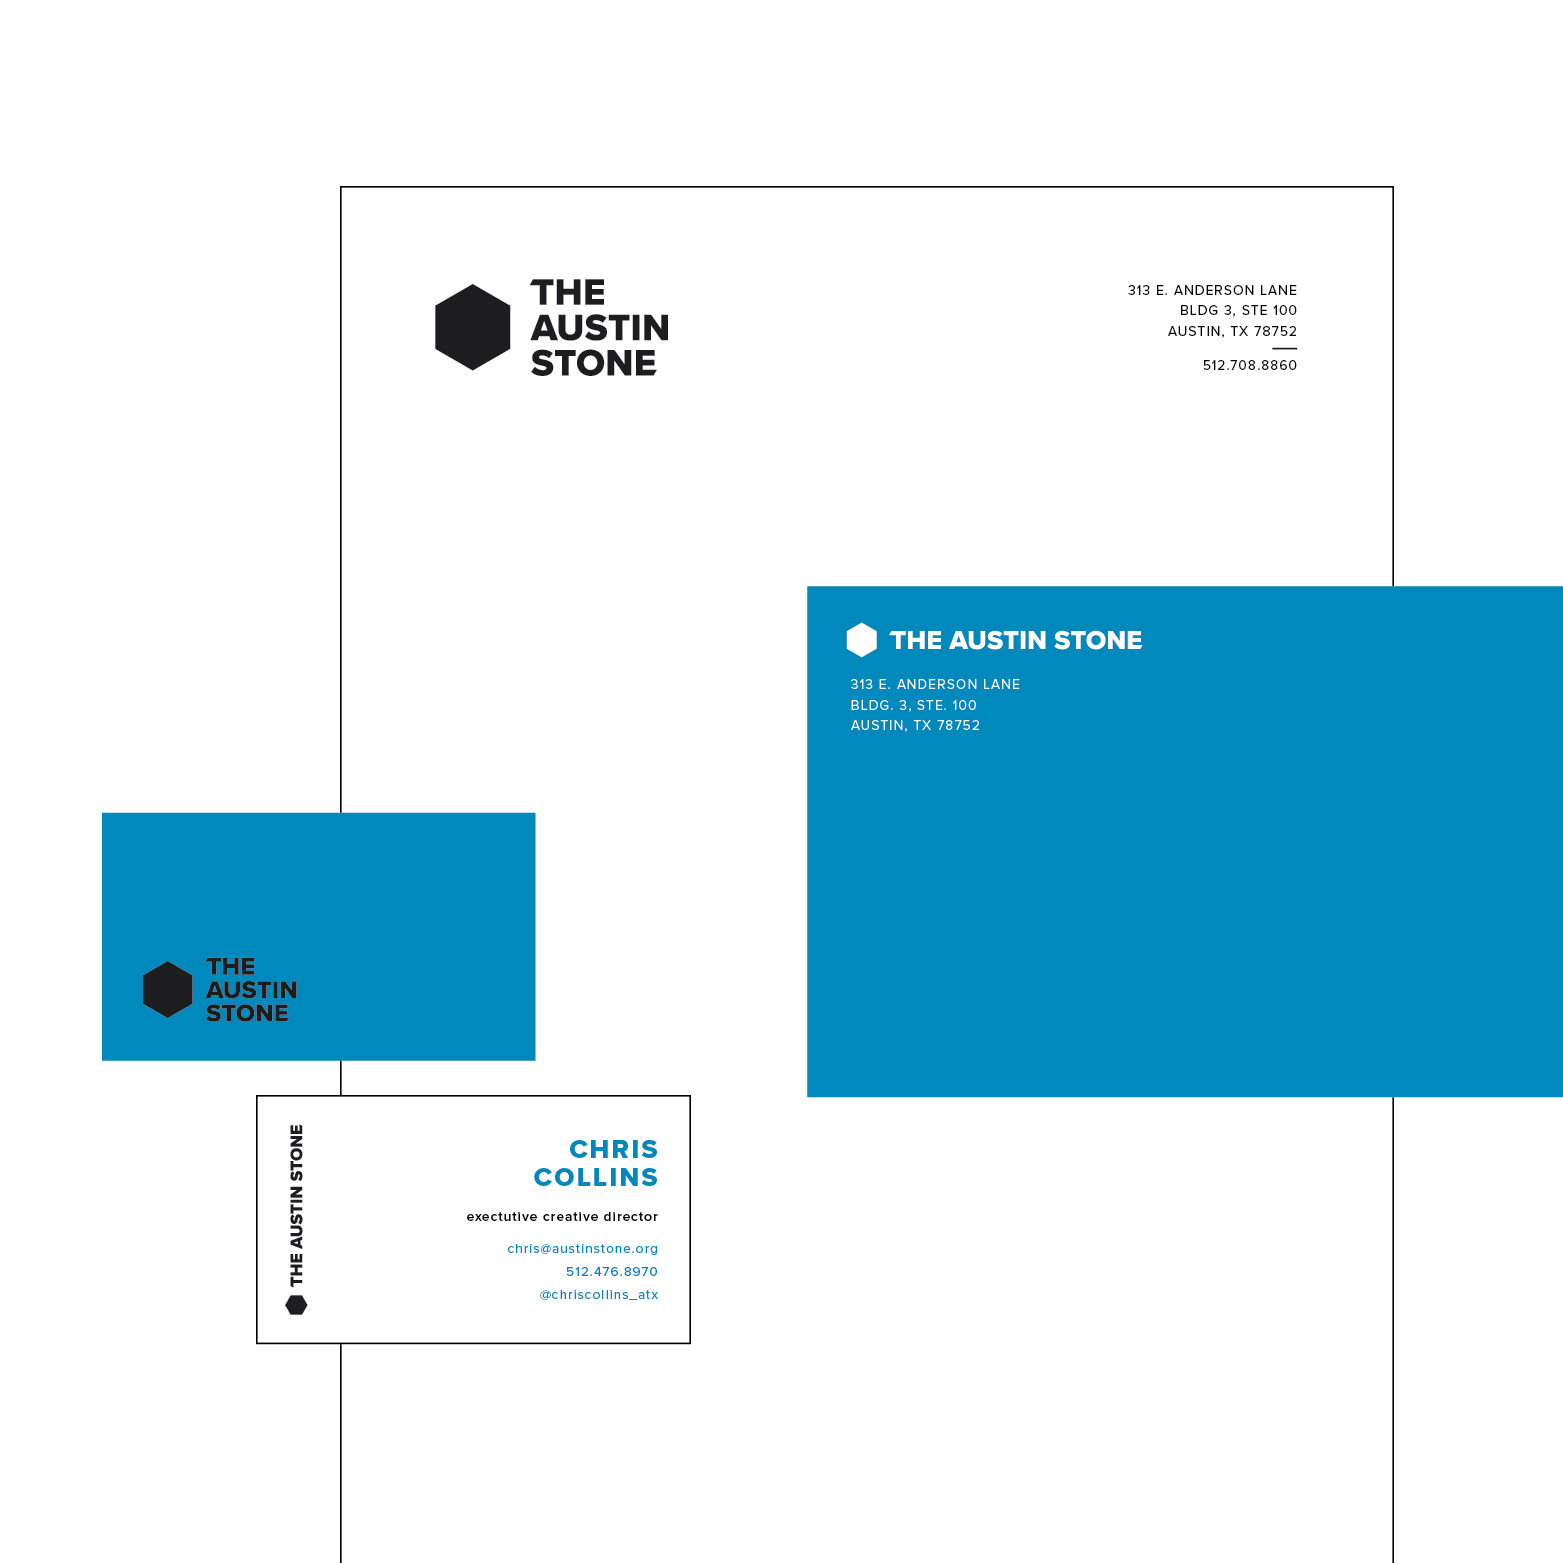 ASCC-Rebrand-Case-Study-Images-06.jpg